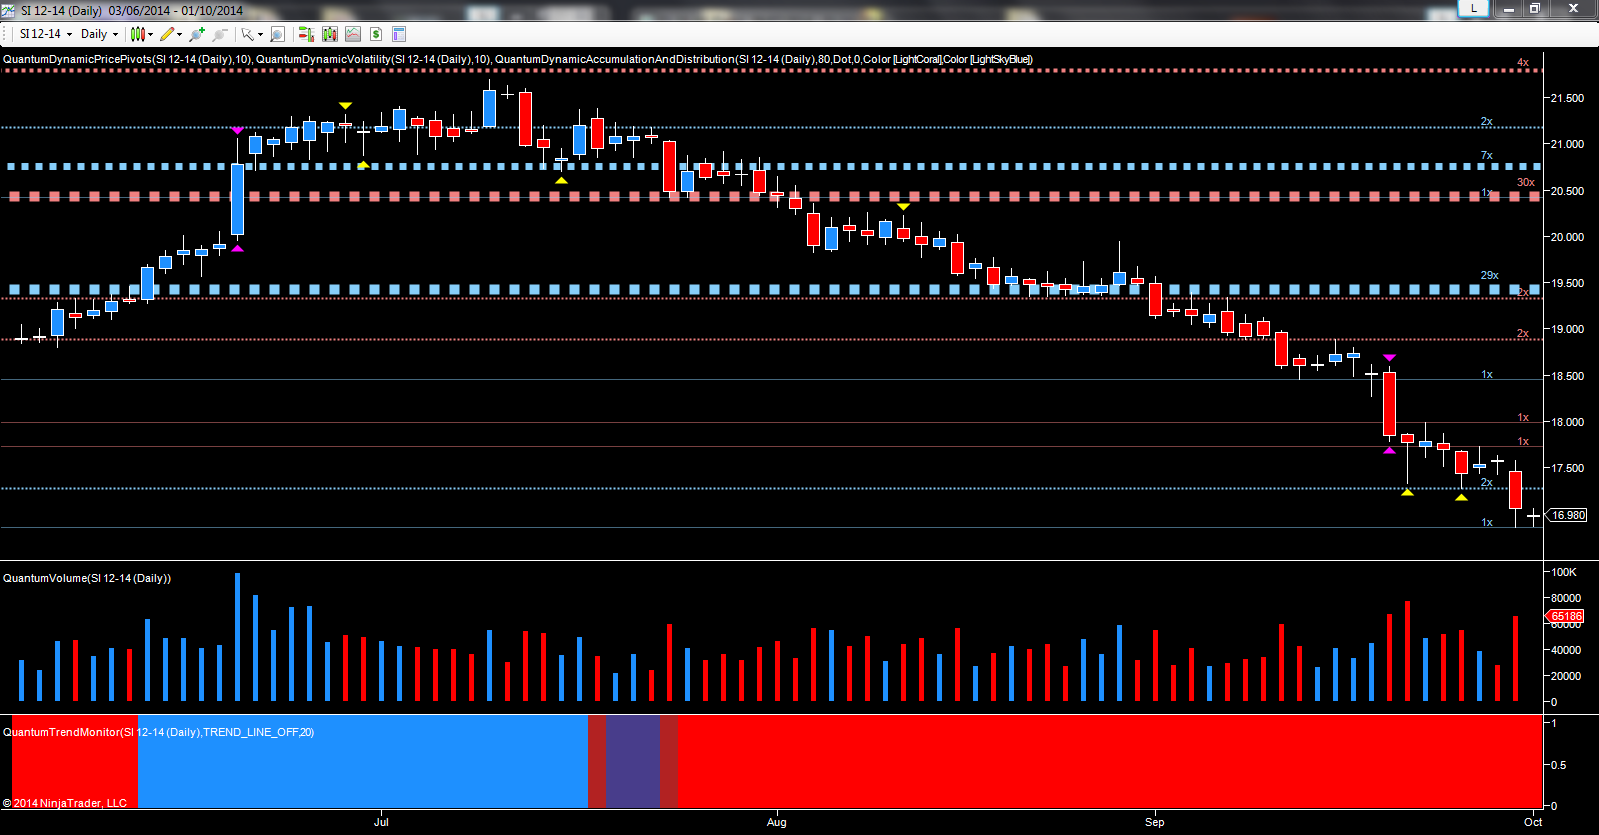 December silver futures - daily chart